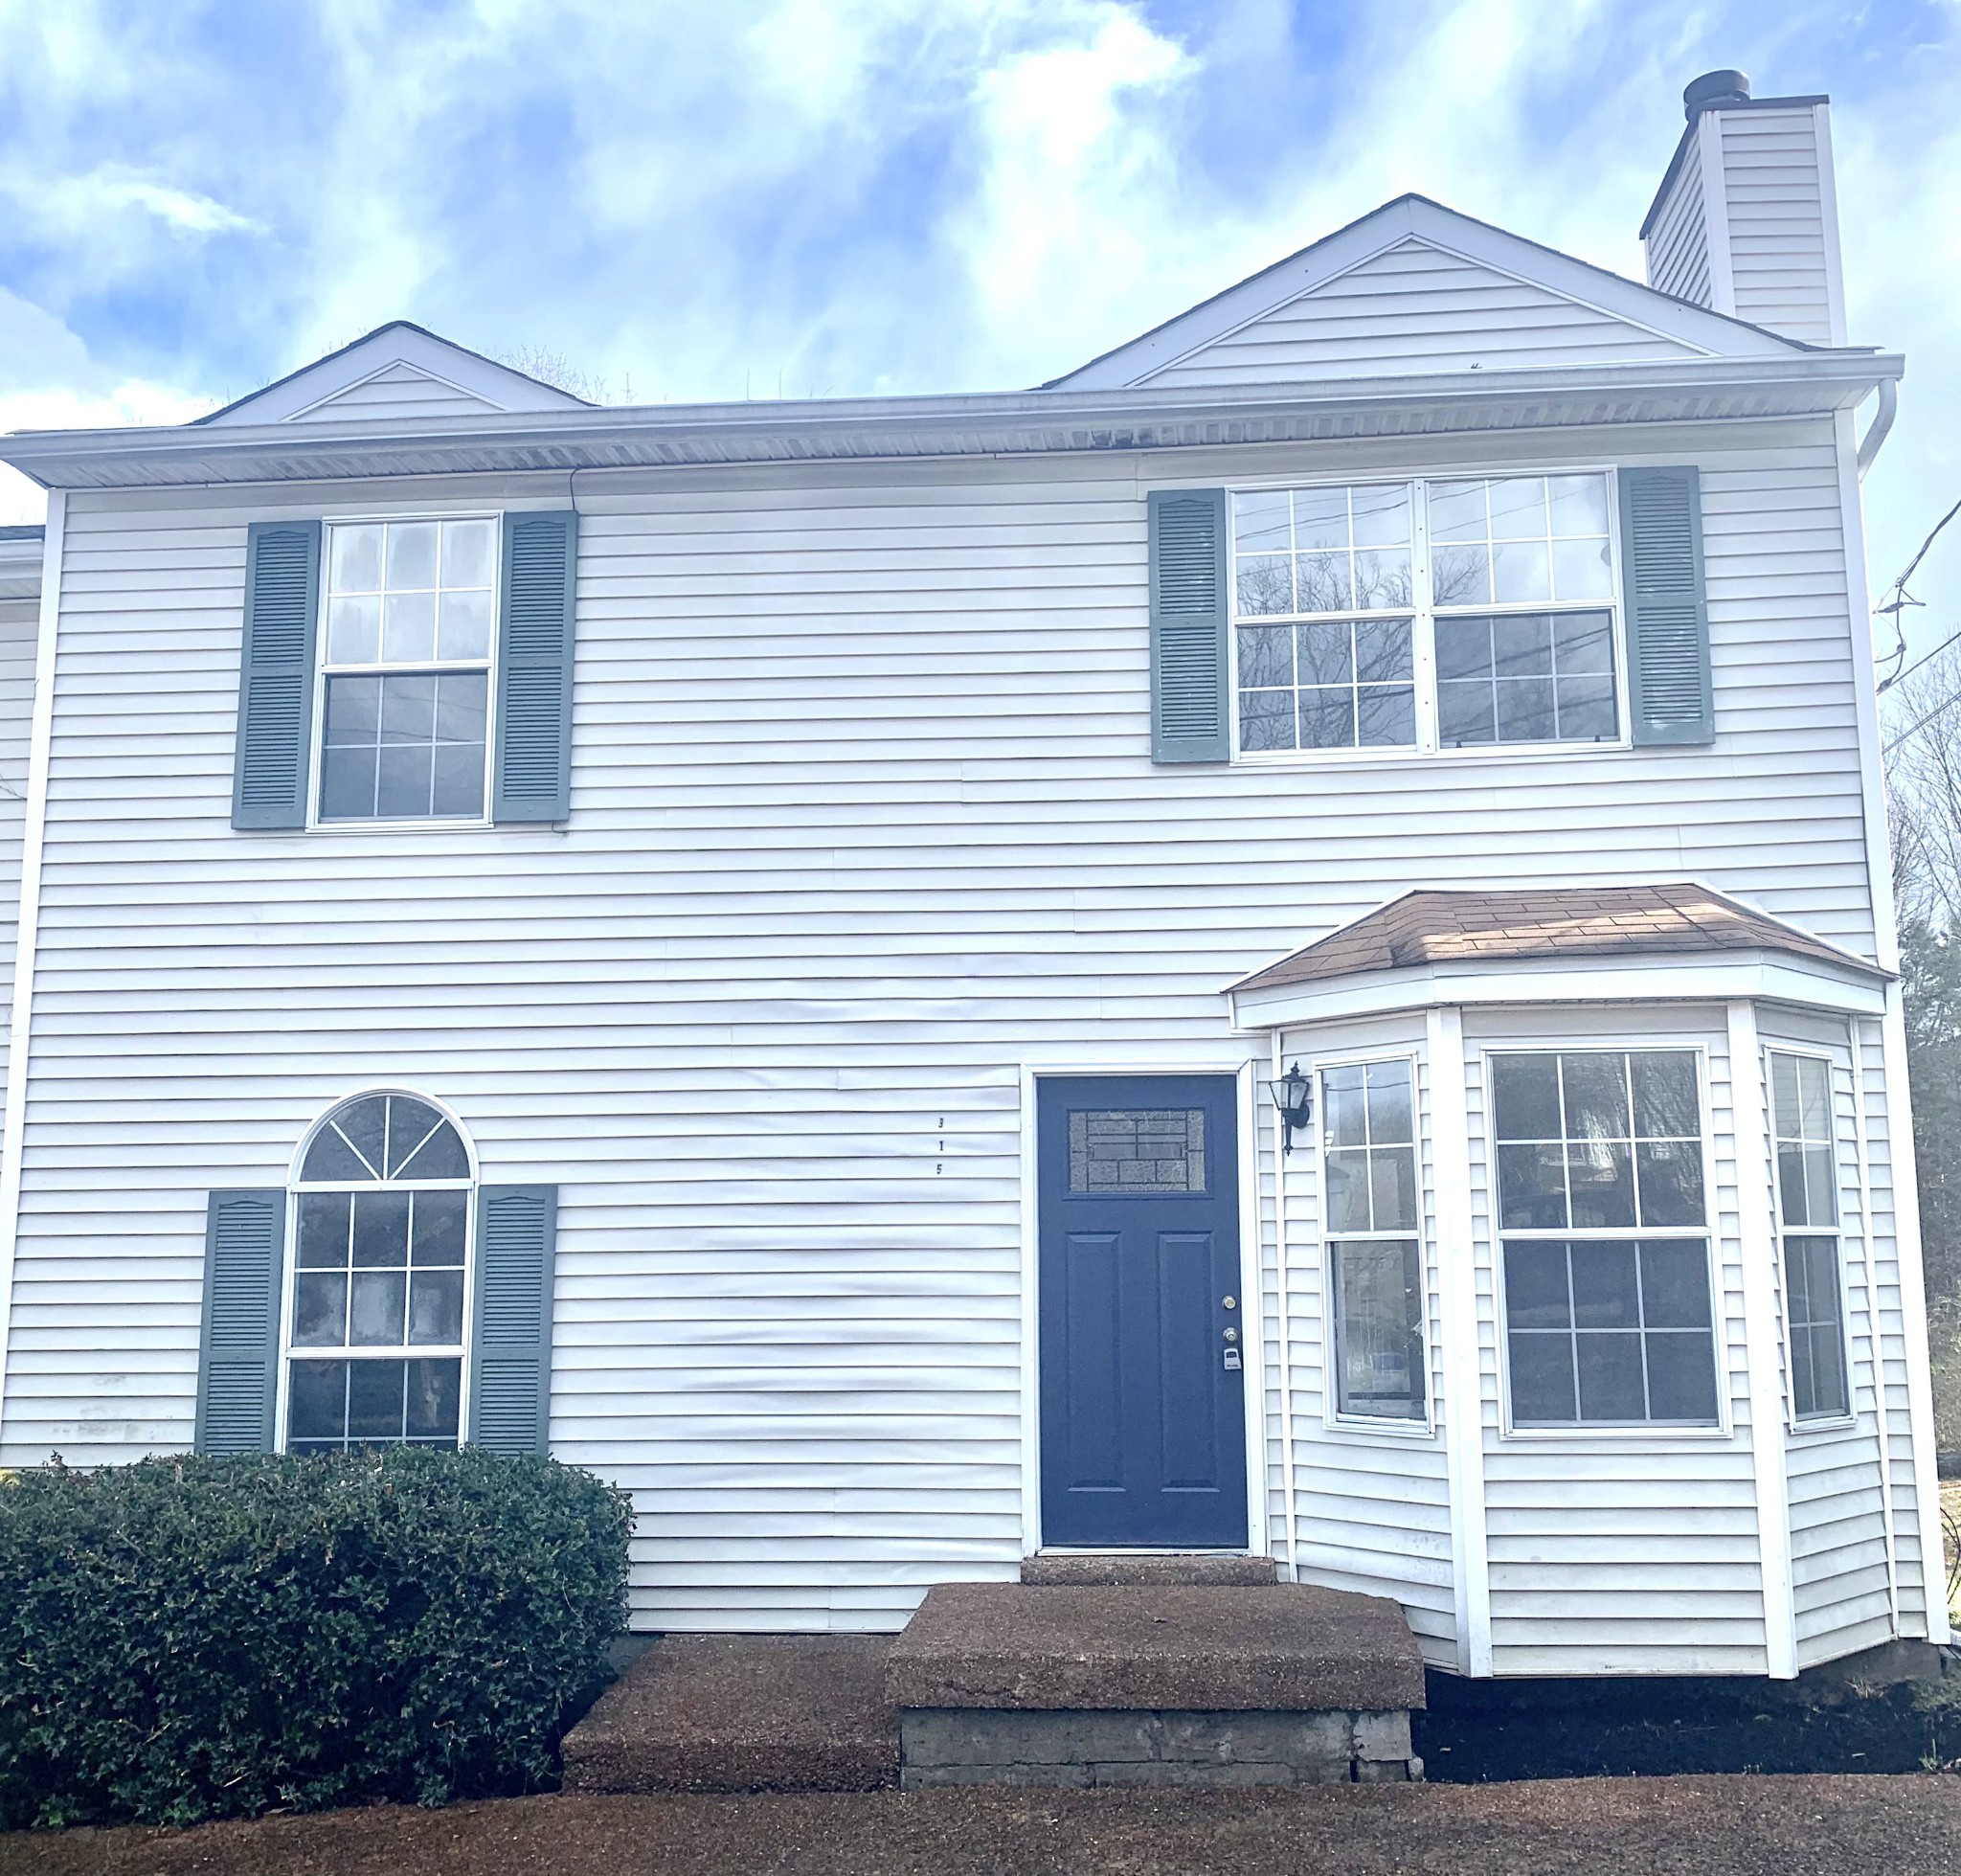 [MULTIPLE OFFERS RECEIVED, highest and best due by 6pm tomorrow 1/19] This updated townhome offers 4 Bedrooms/2 baths including fresh paint, new flooring, vanities, and kitchen amenities. New appliances include refrigerator, clothes washer/dryer, and dishwasher. Just 20-minute away downtown Nashville! Storage shed in backyard will convey.